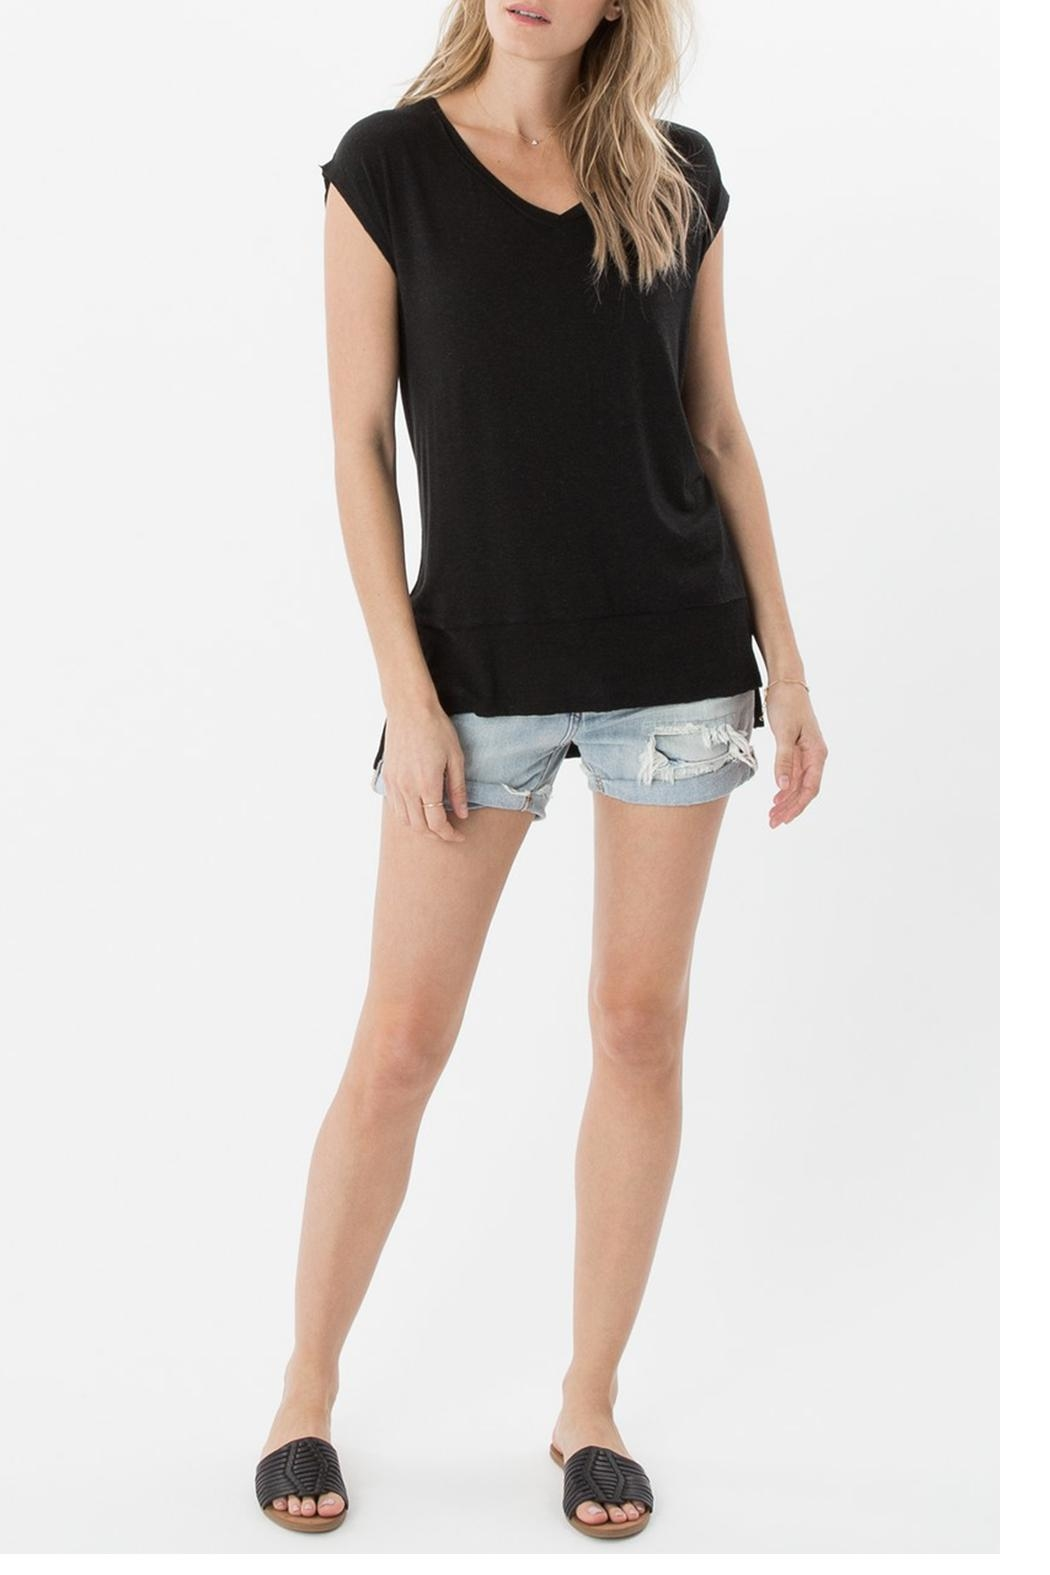 z supply Mia Linen Top - Front Cropped Image